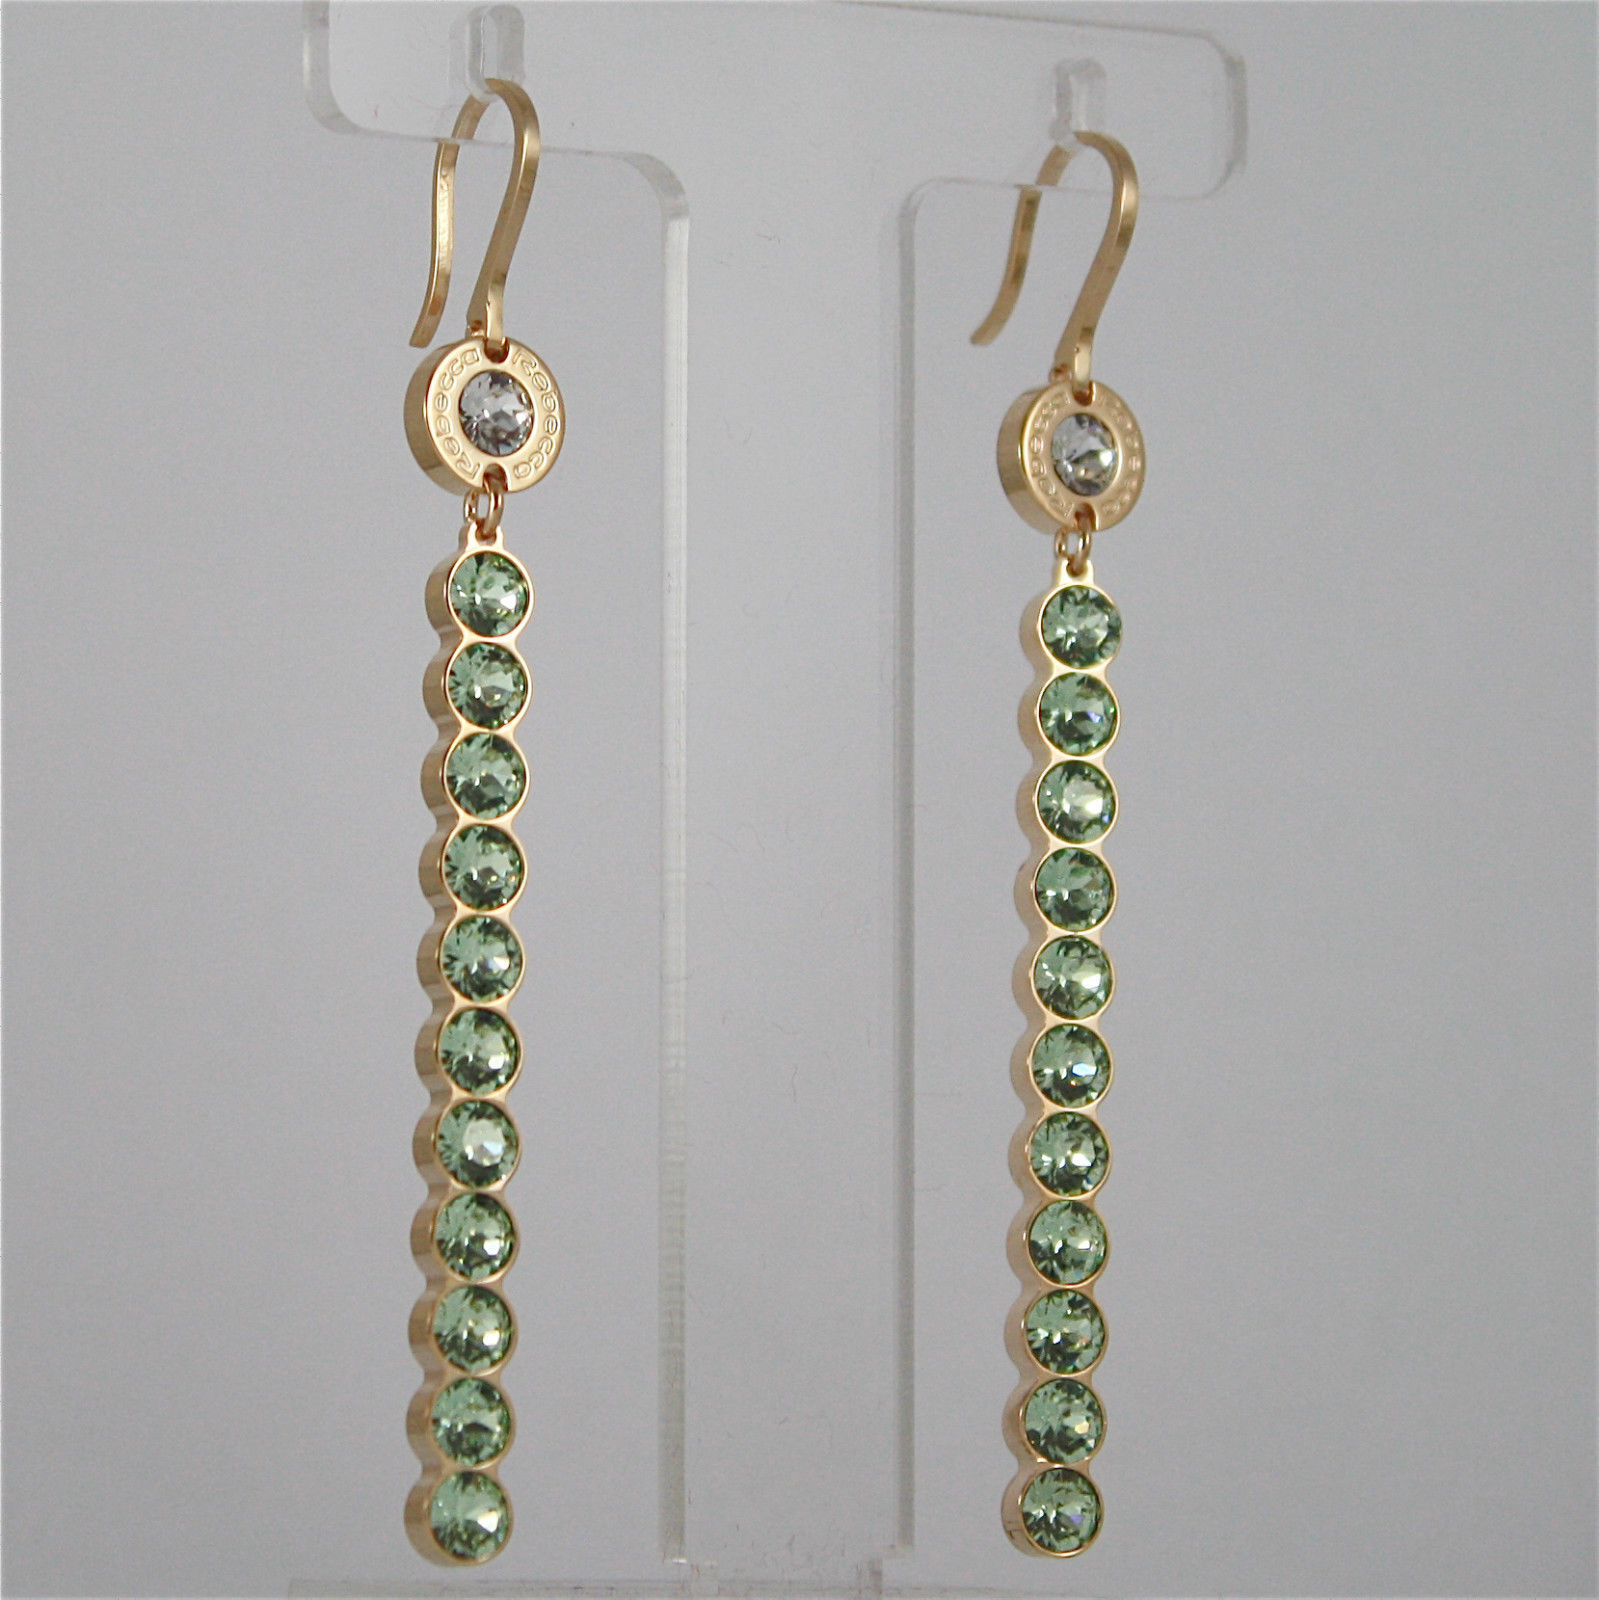 YELLOW GOLD PLATED BRONZE REBECCA EARRINGS PALM BEACH BPBOOE27 MADE IN ITALY